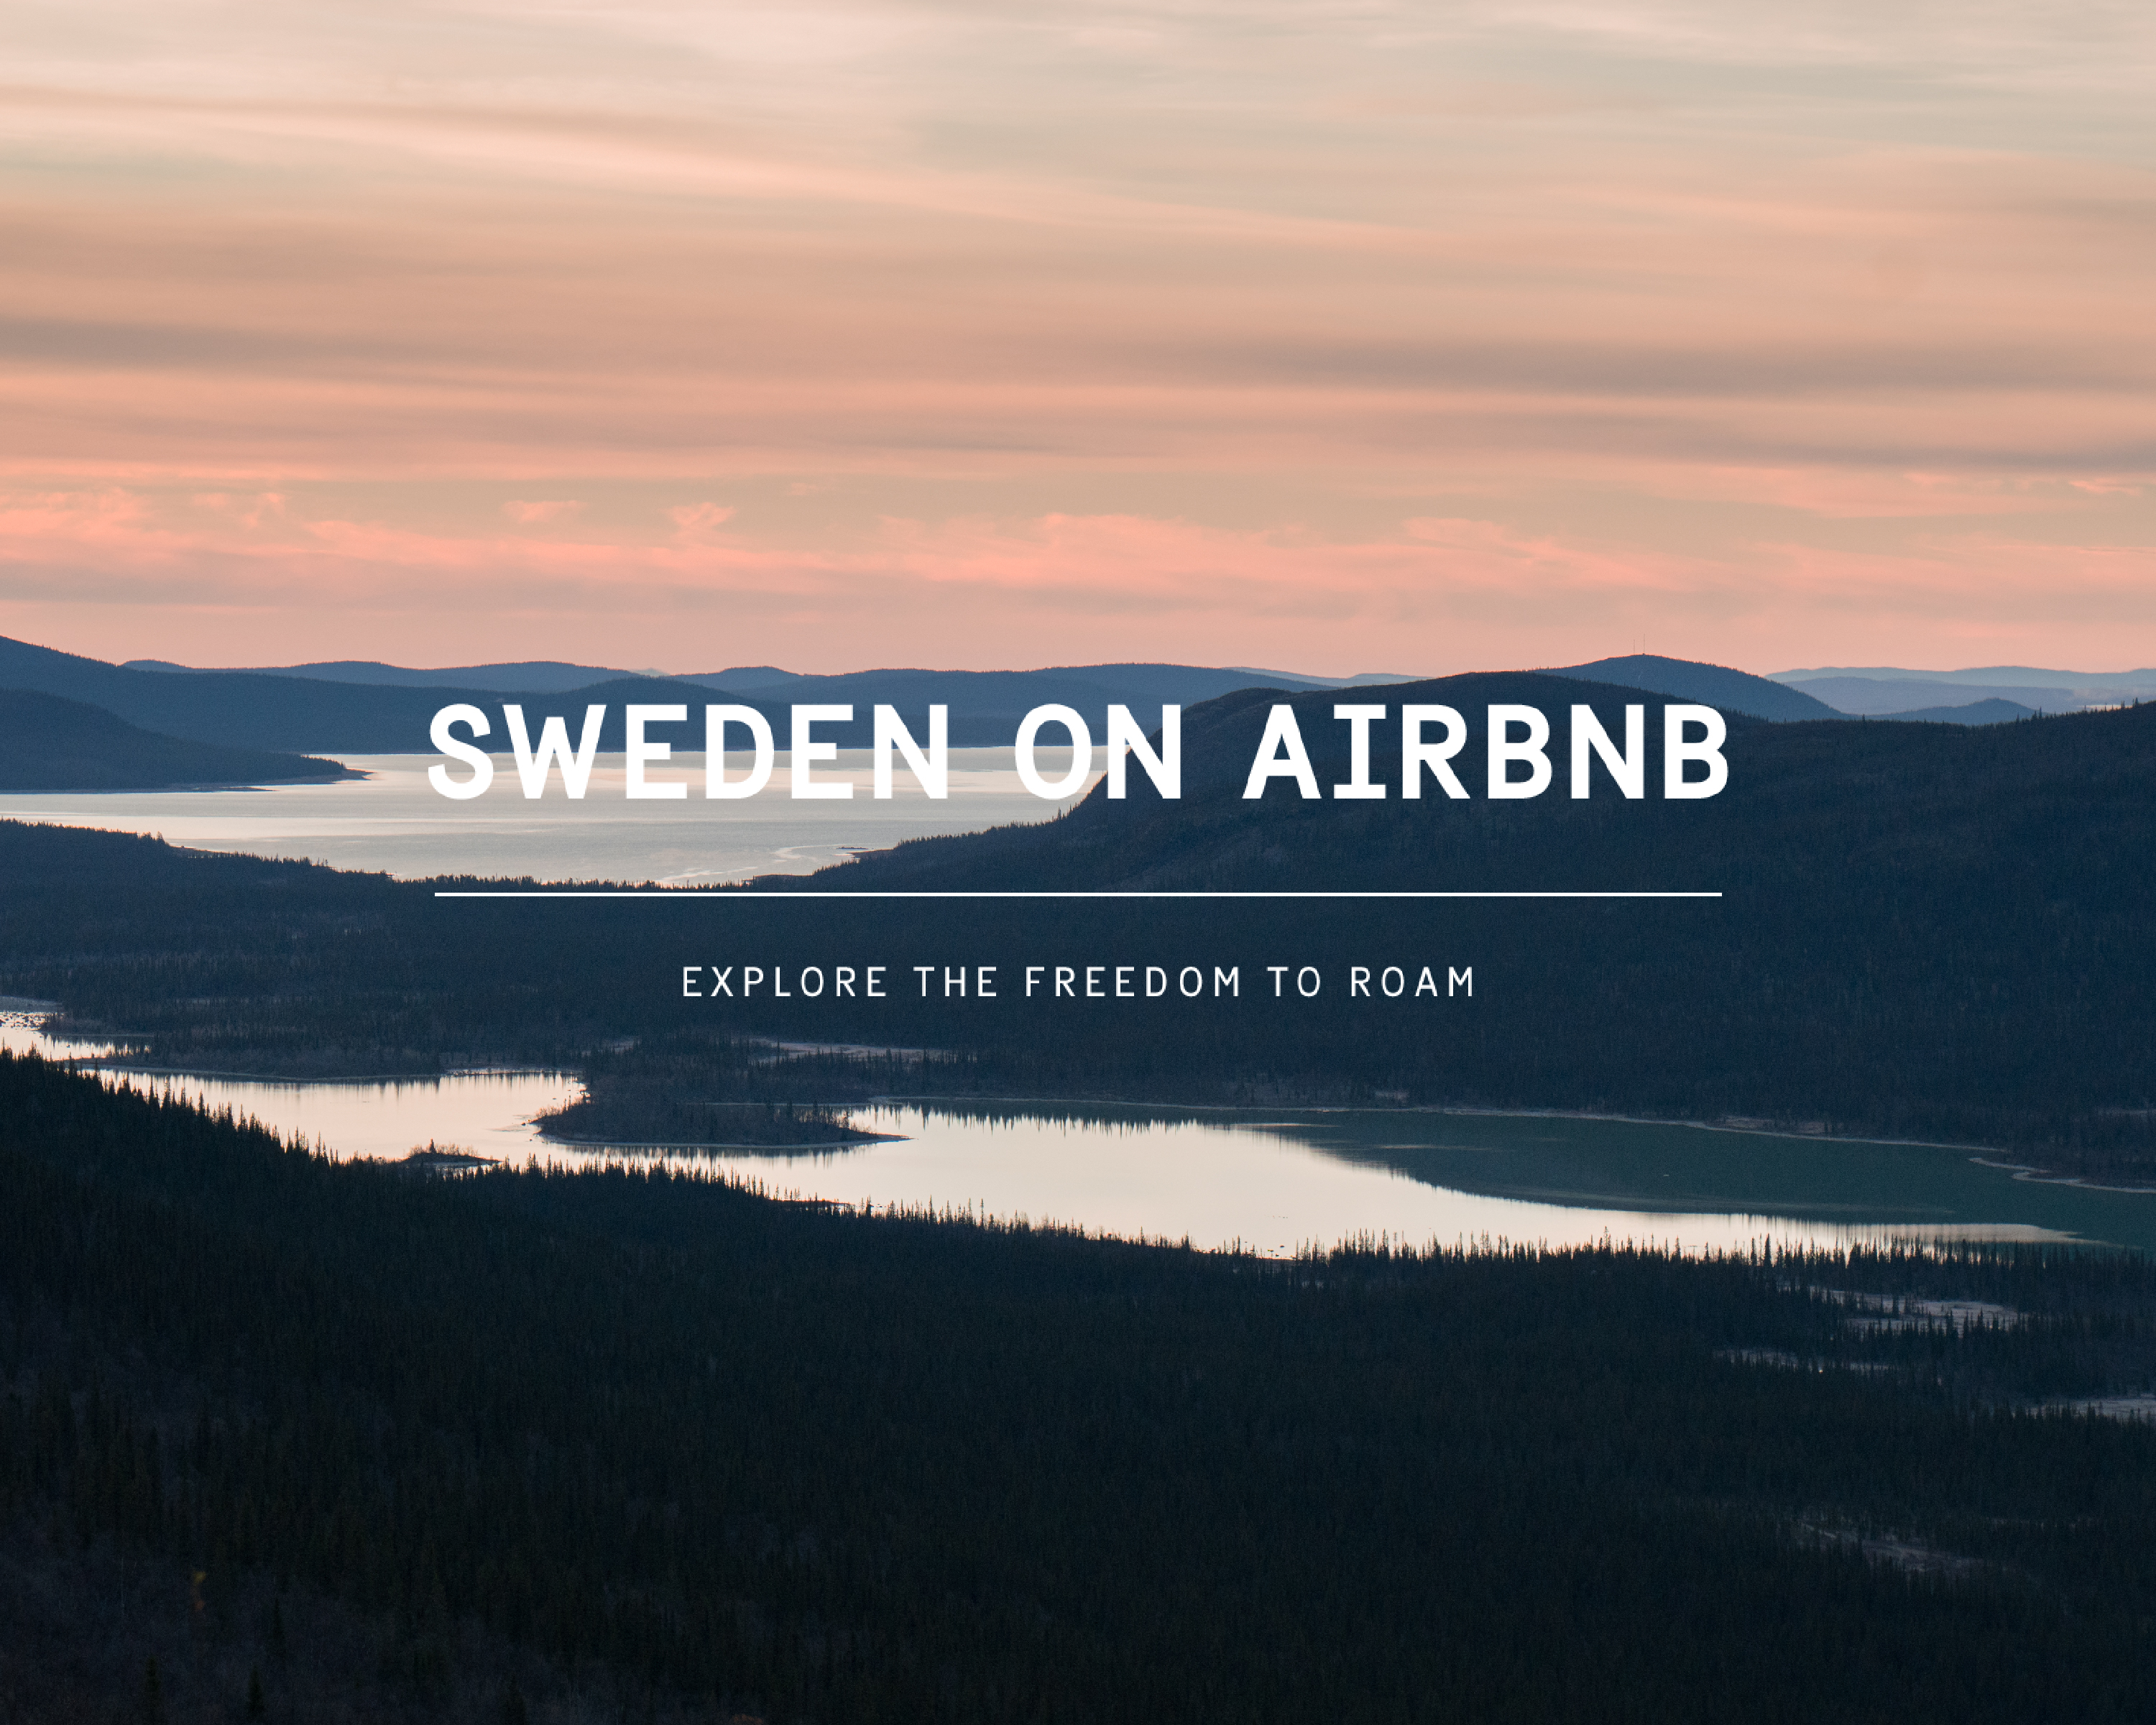 Image Media for Sweden on Airbnb